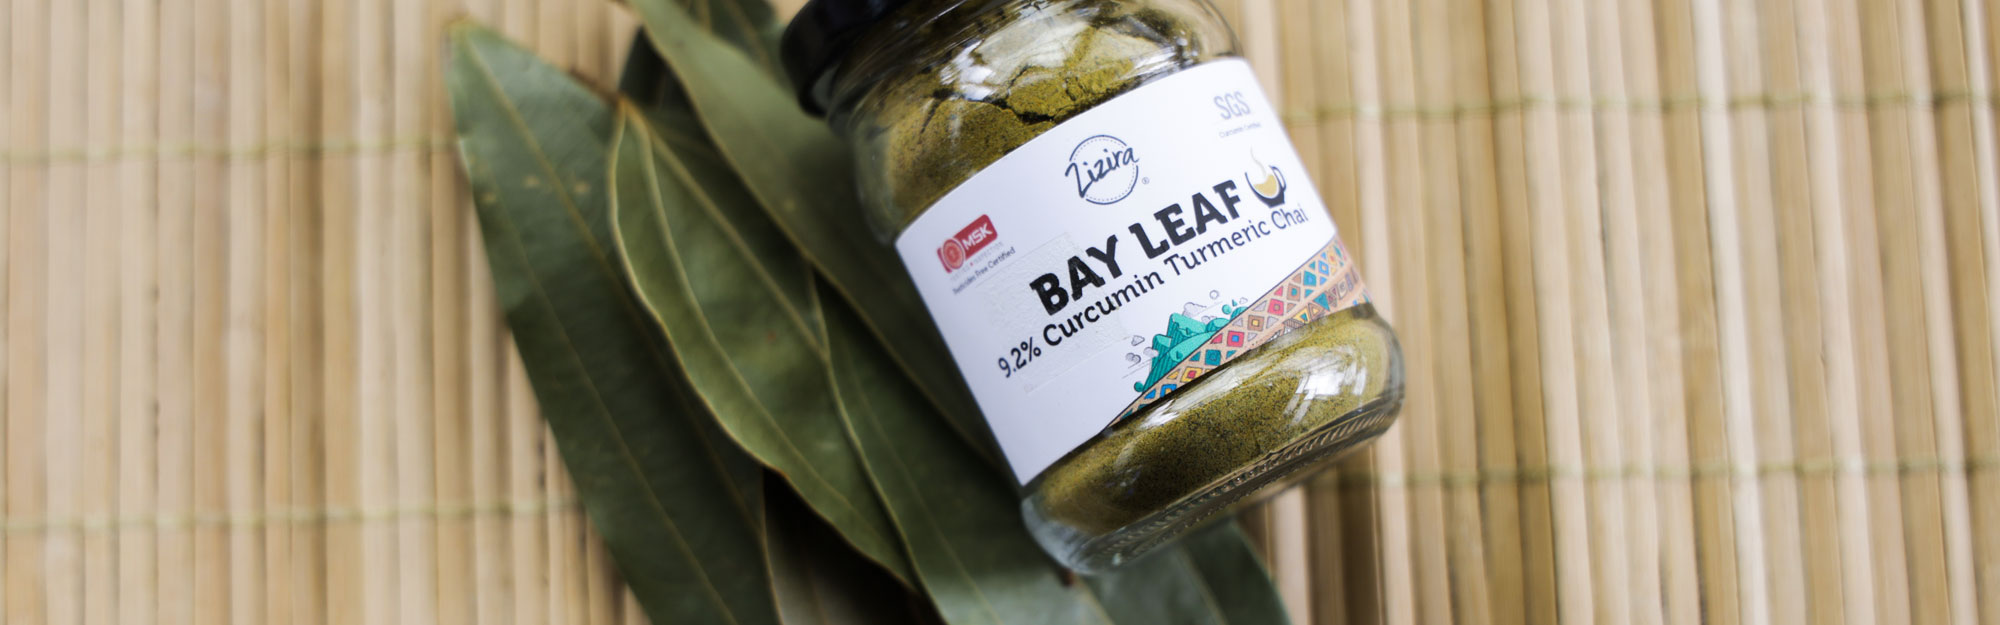 5 Easy To Make Bay Leaf Tea Recipes at Home